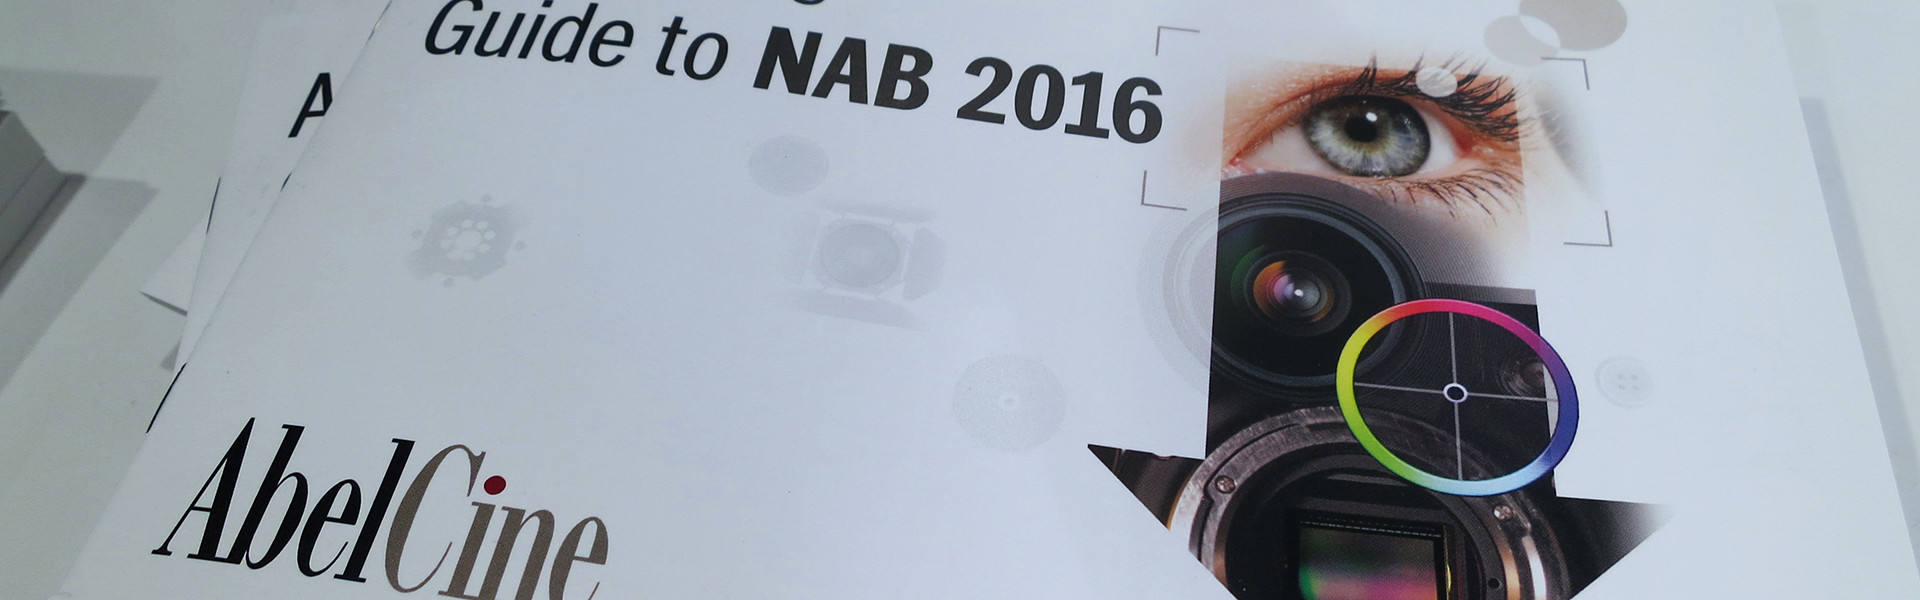 Header image for article NAB 2016 Tech Talks at the AbelCine Booth: Angenieux